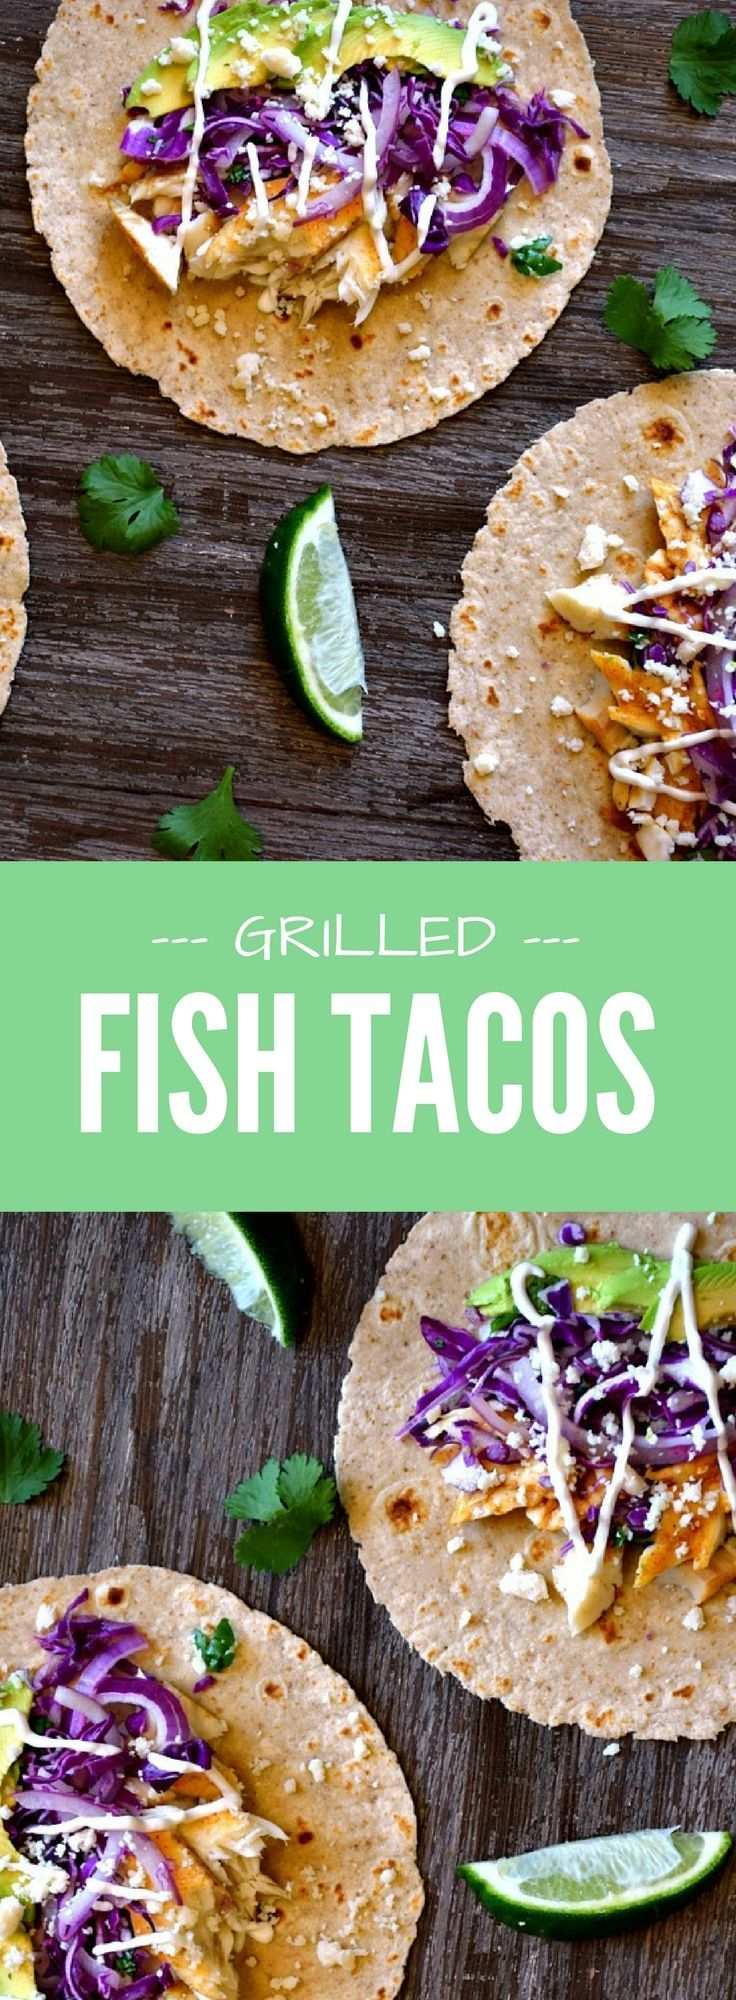 With succulenttilapia or mahi mahi, a splash of lime, fresh slaw and a blend of spices to kick up the heat, these grilled fish tacos are the perfect excuse to fire up the grill!Use corn tortillas for gluten free.